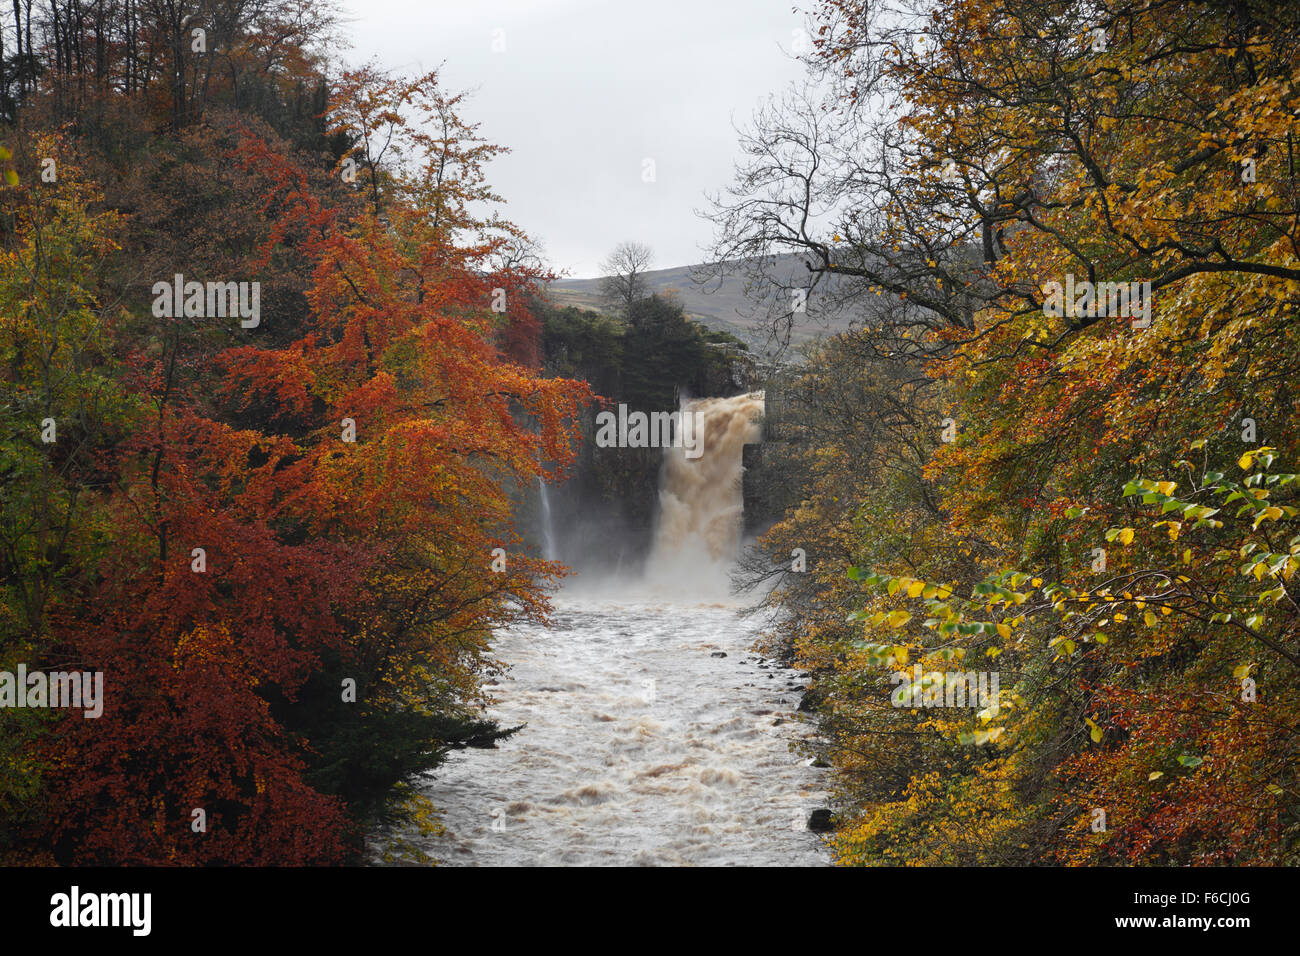 High Force waterfall on the River Tees, Teesdale. County Durham. England. UK. - Stock Image